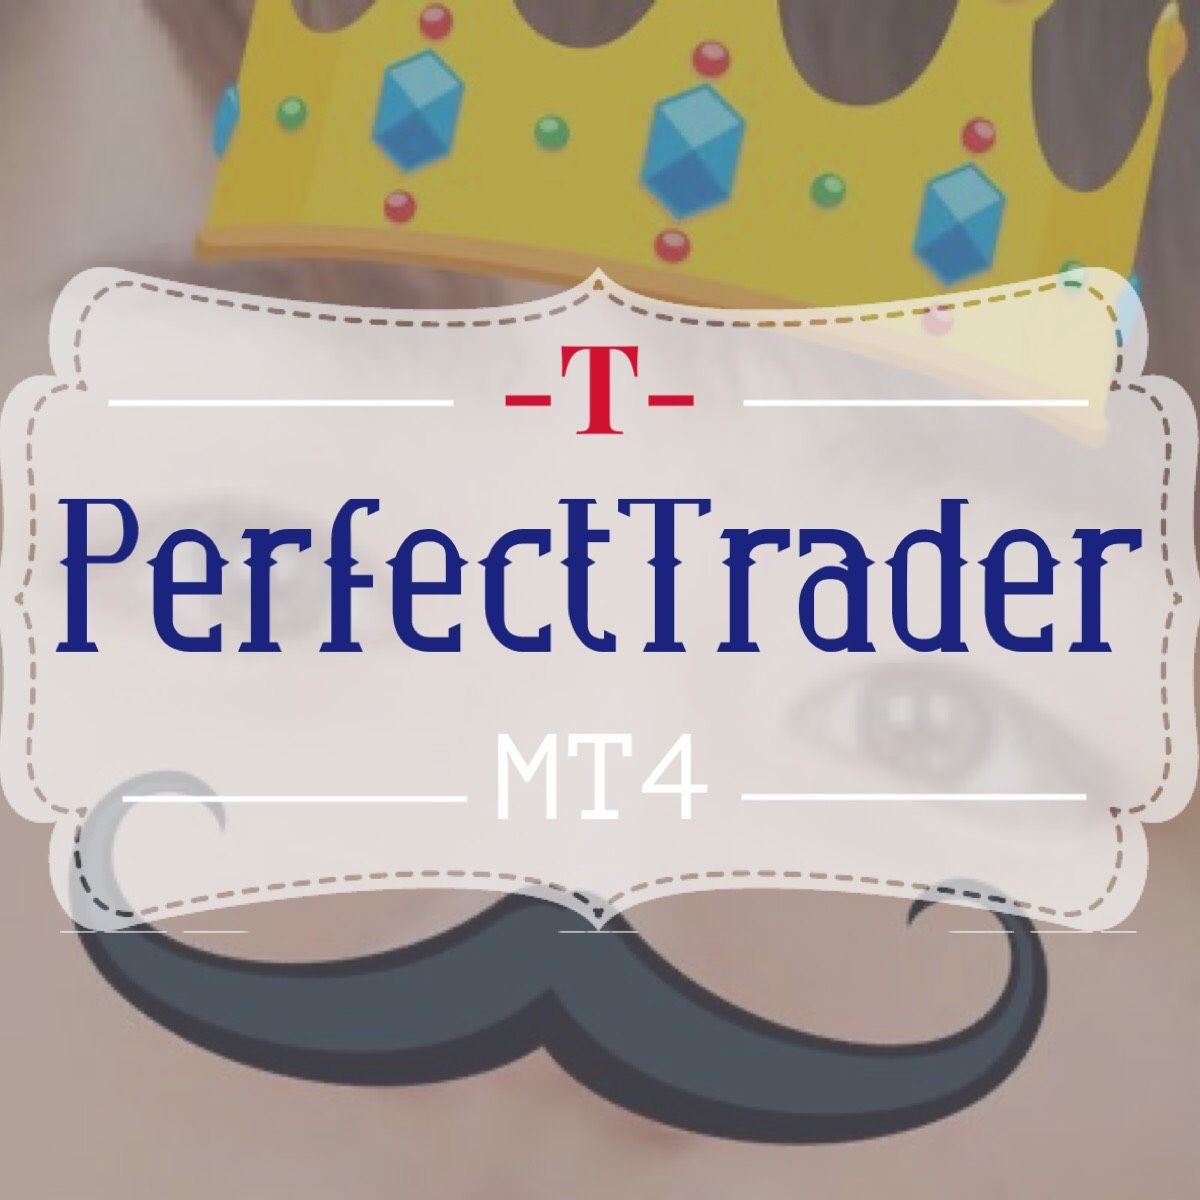 -T- Perfect Trader